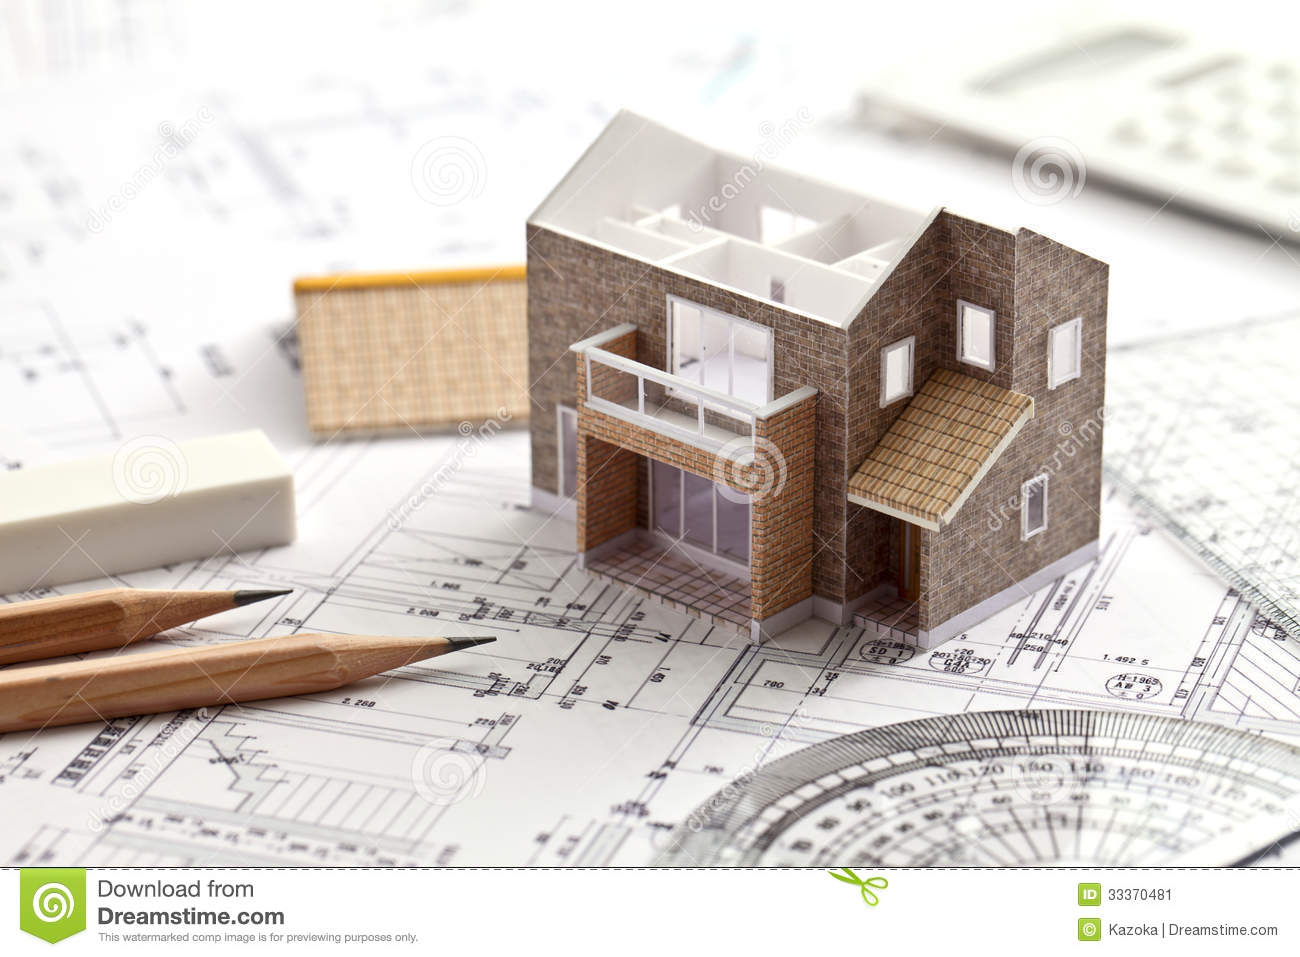 House design drawing stock image image 33370481 Build your home